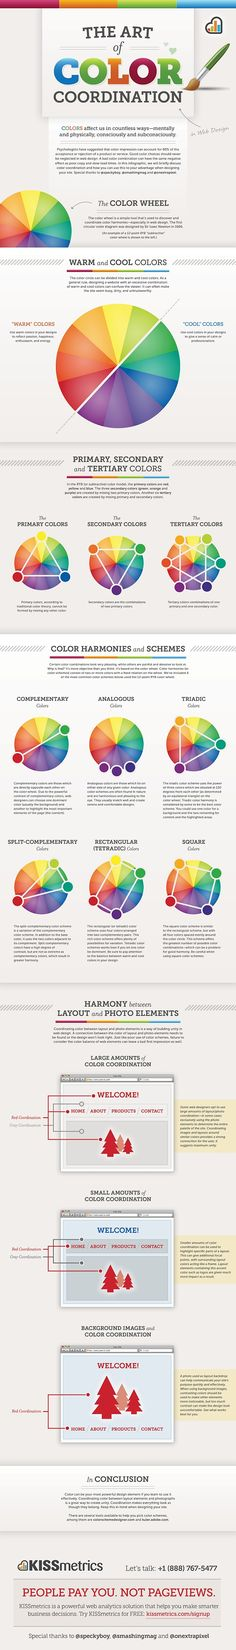 The Art of Color Coordination - Colors affect us in Countless Ways - Great Infographic on Color Coordination in your Marketing and Design                                                                                                                                                                                 More